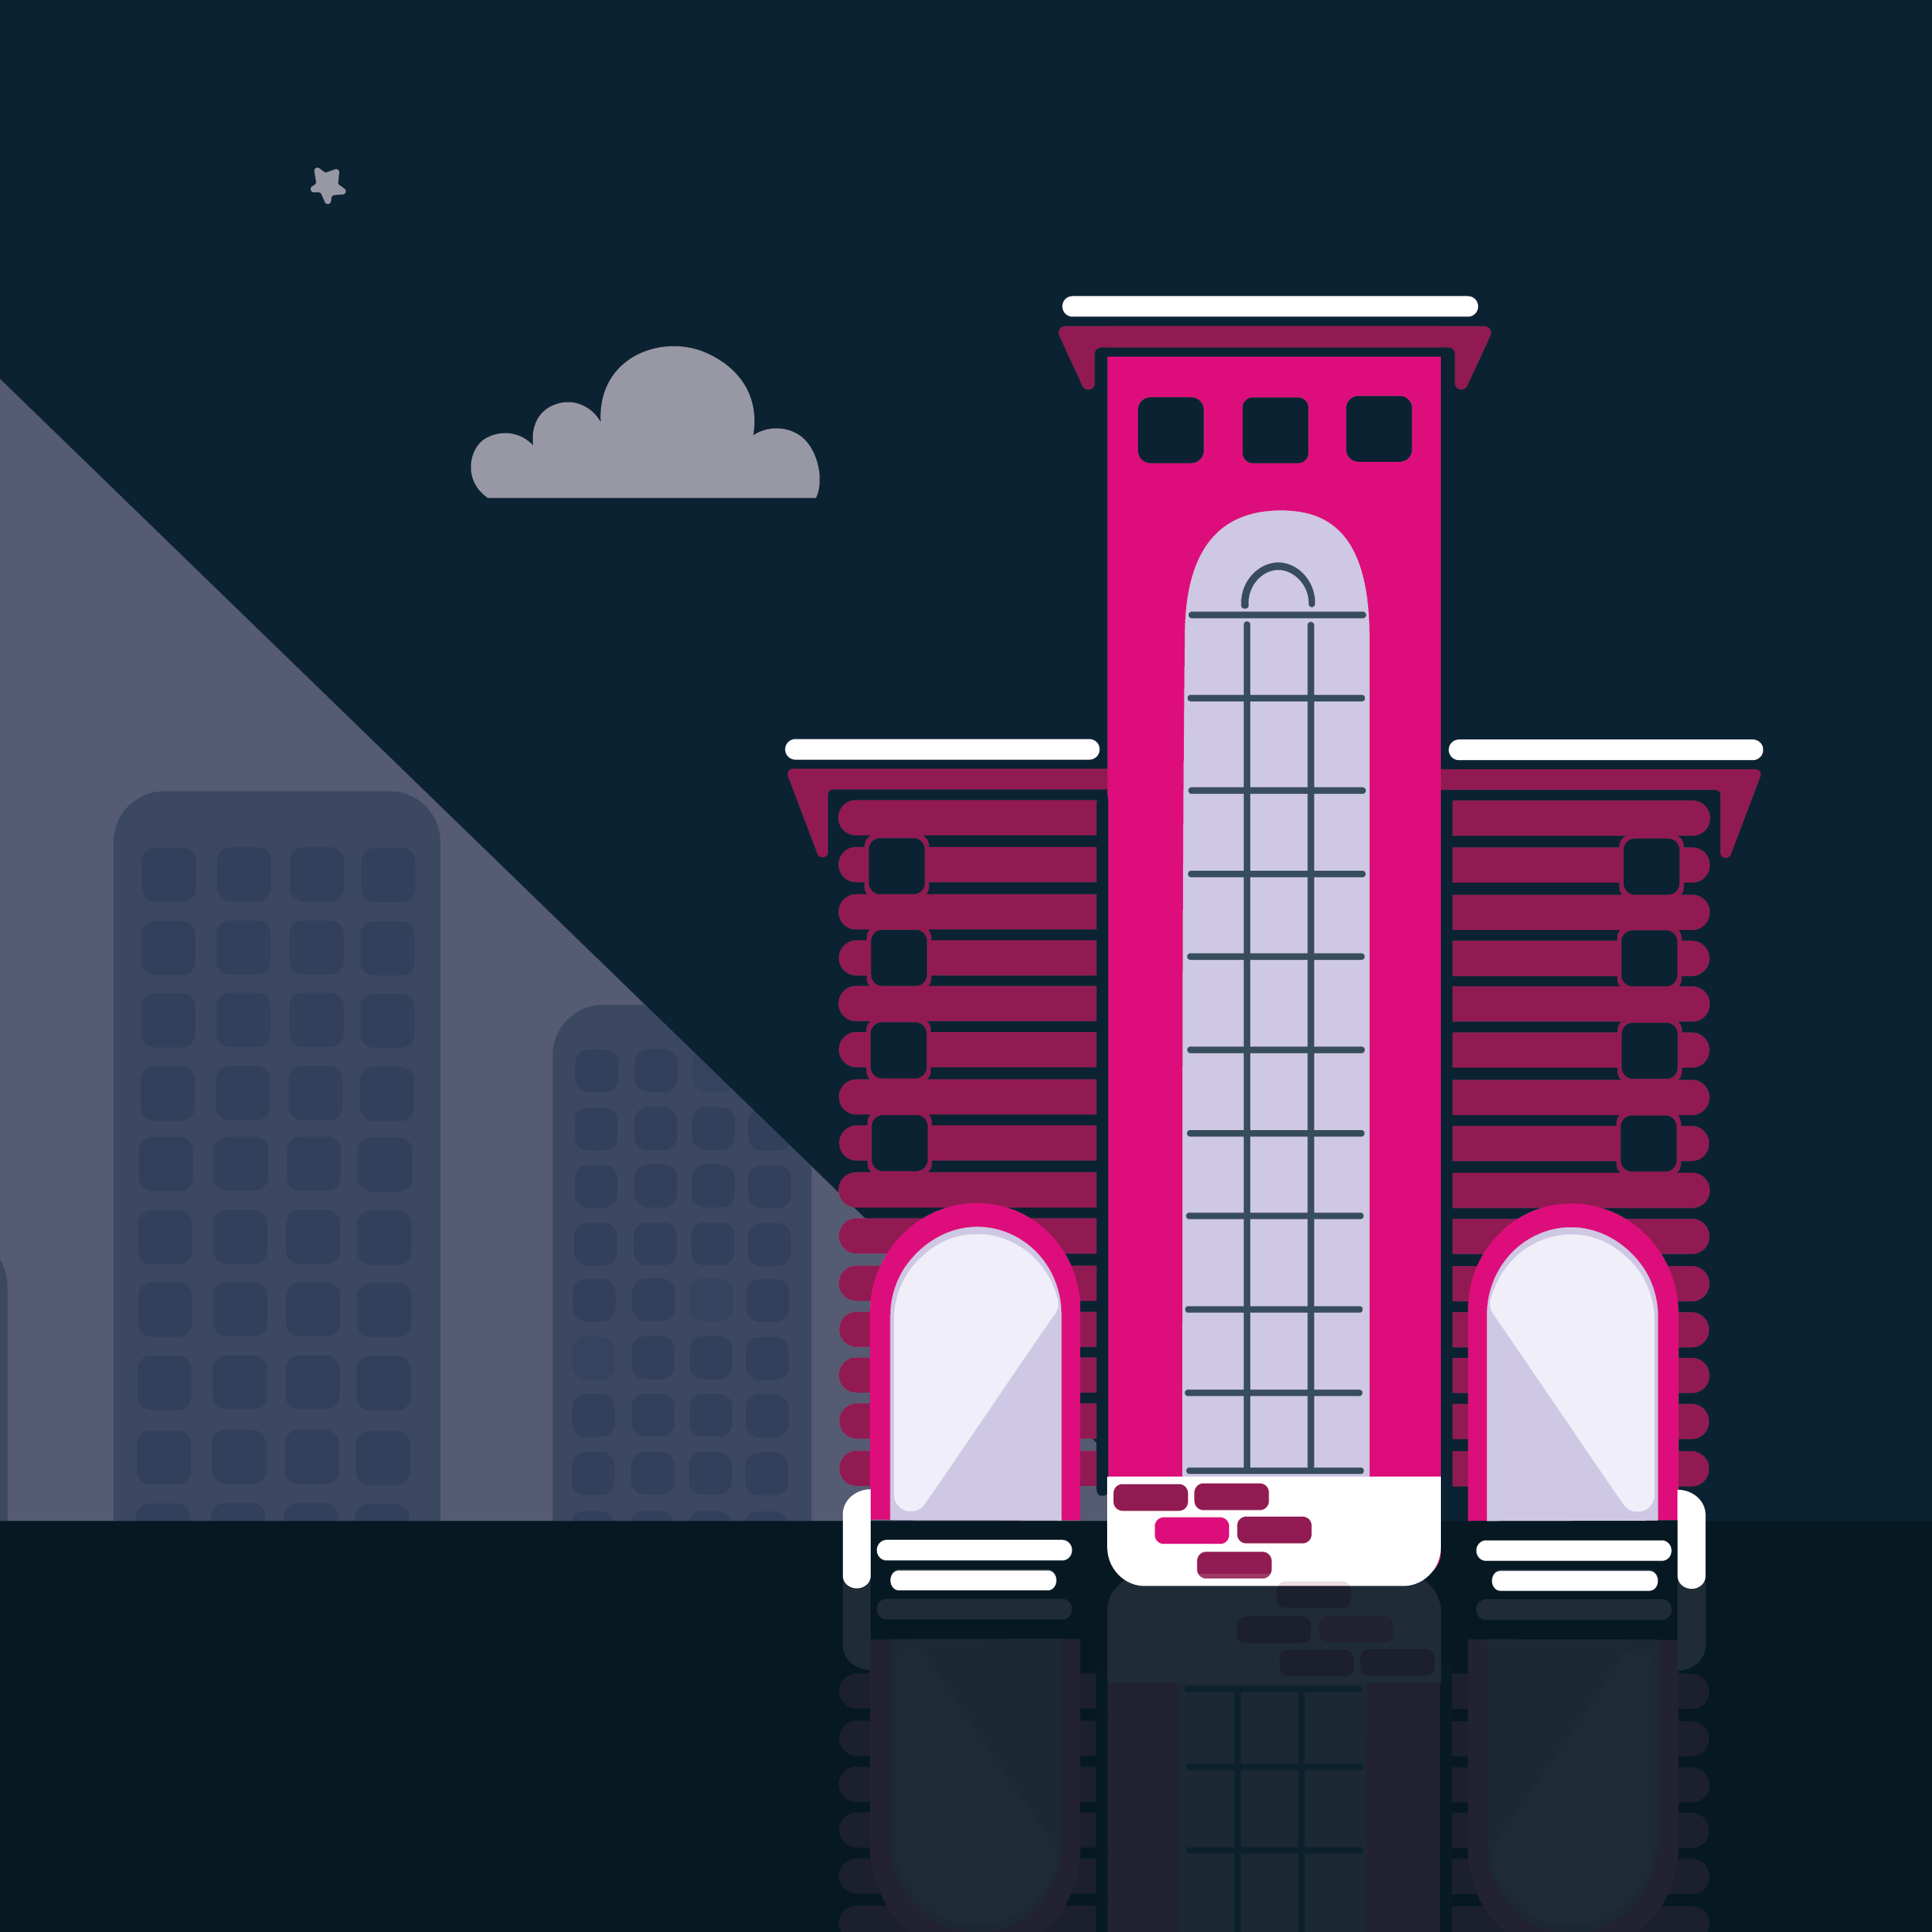 crowne plaza-01.png